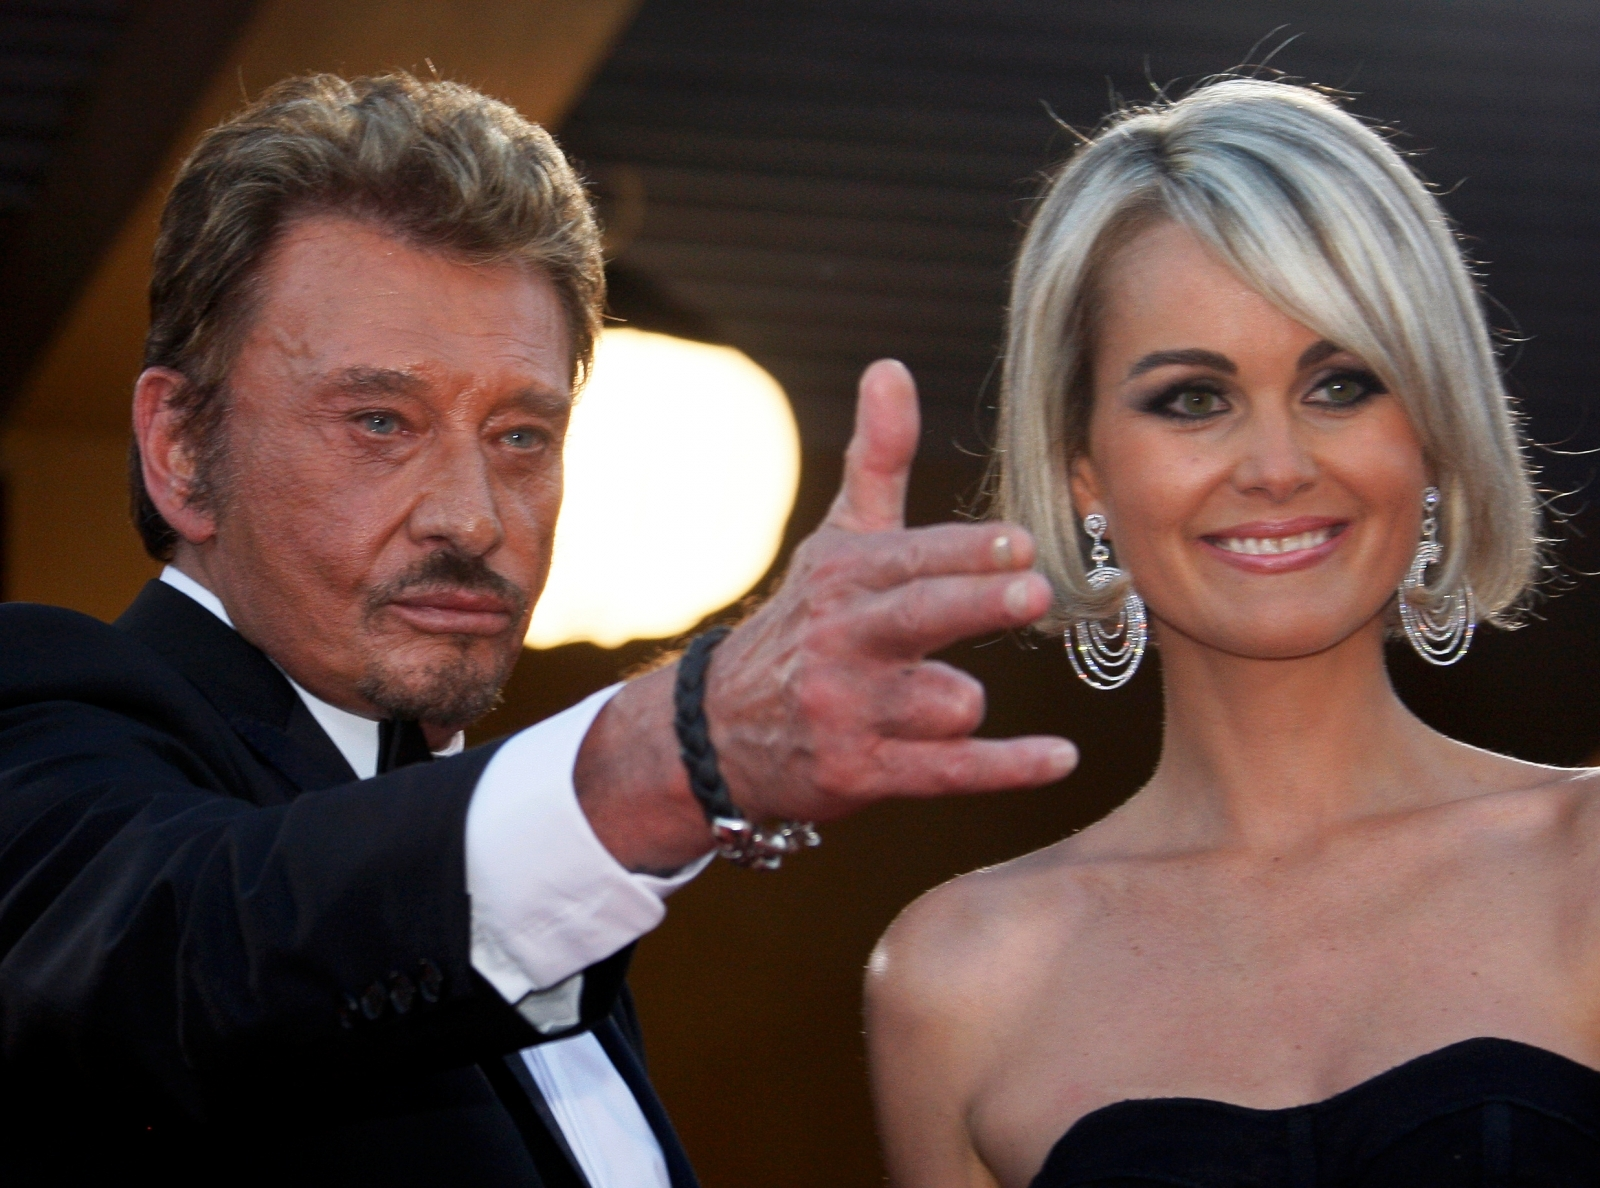 Johnny Hallyday and his wife Laeticia arrive at a screening at the 62nd Cannes Film Festival, in France in 2009